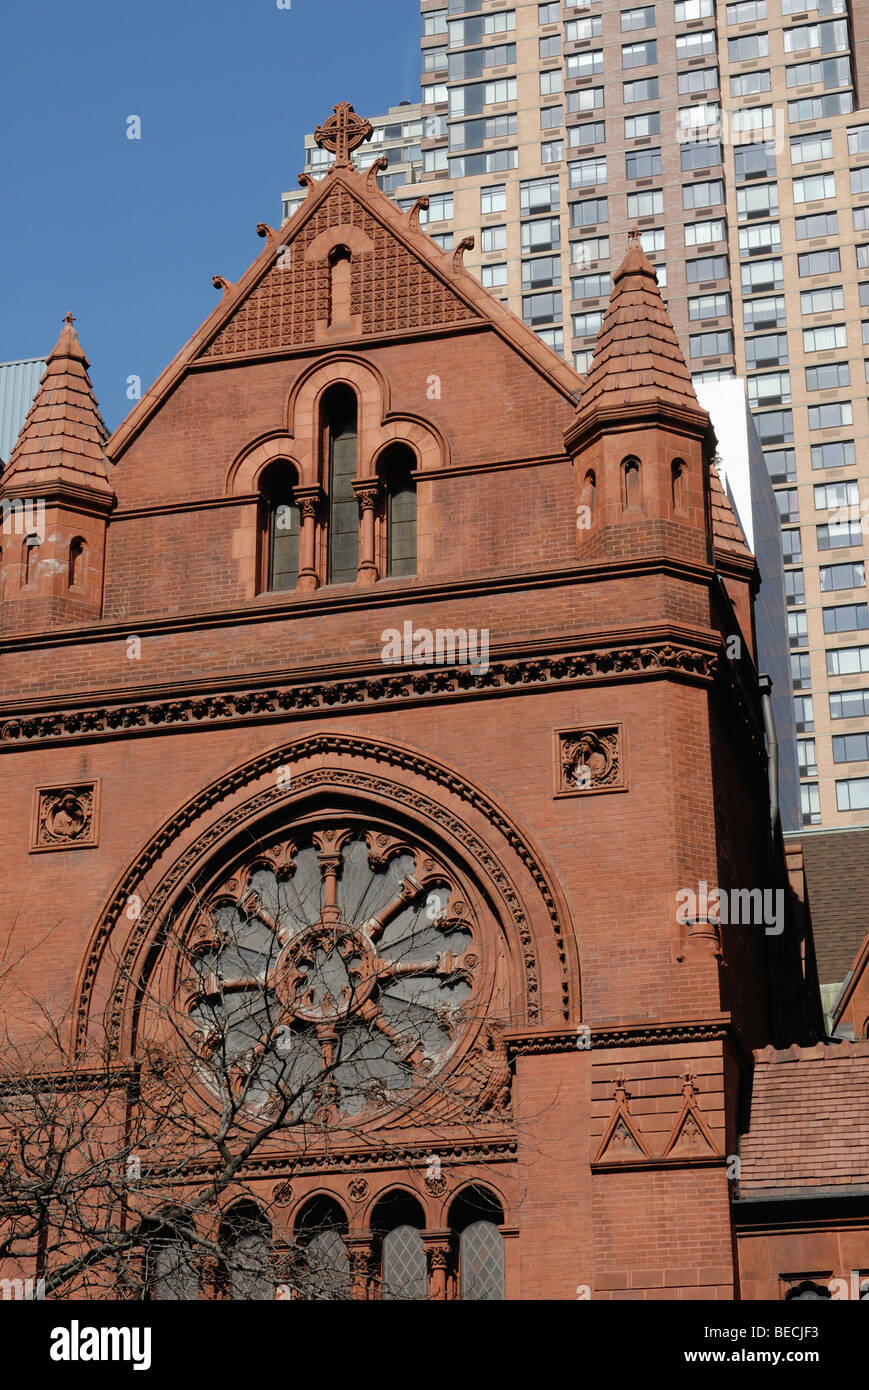 Old brick church in the 57th Street, modern multistory building in the back, New York, USA - Stock Image